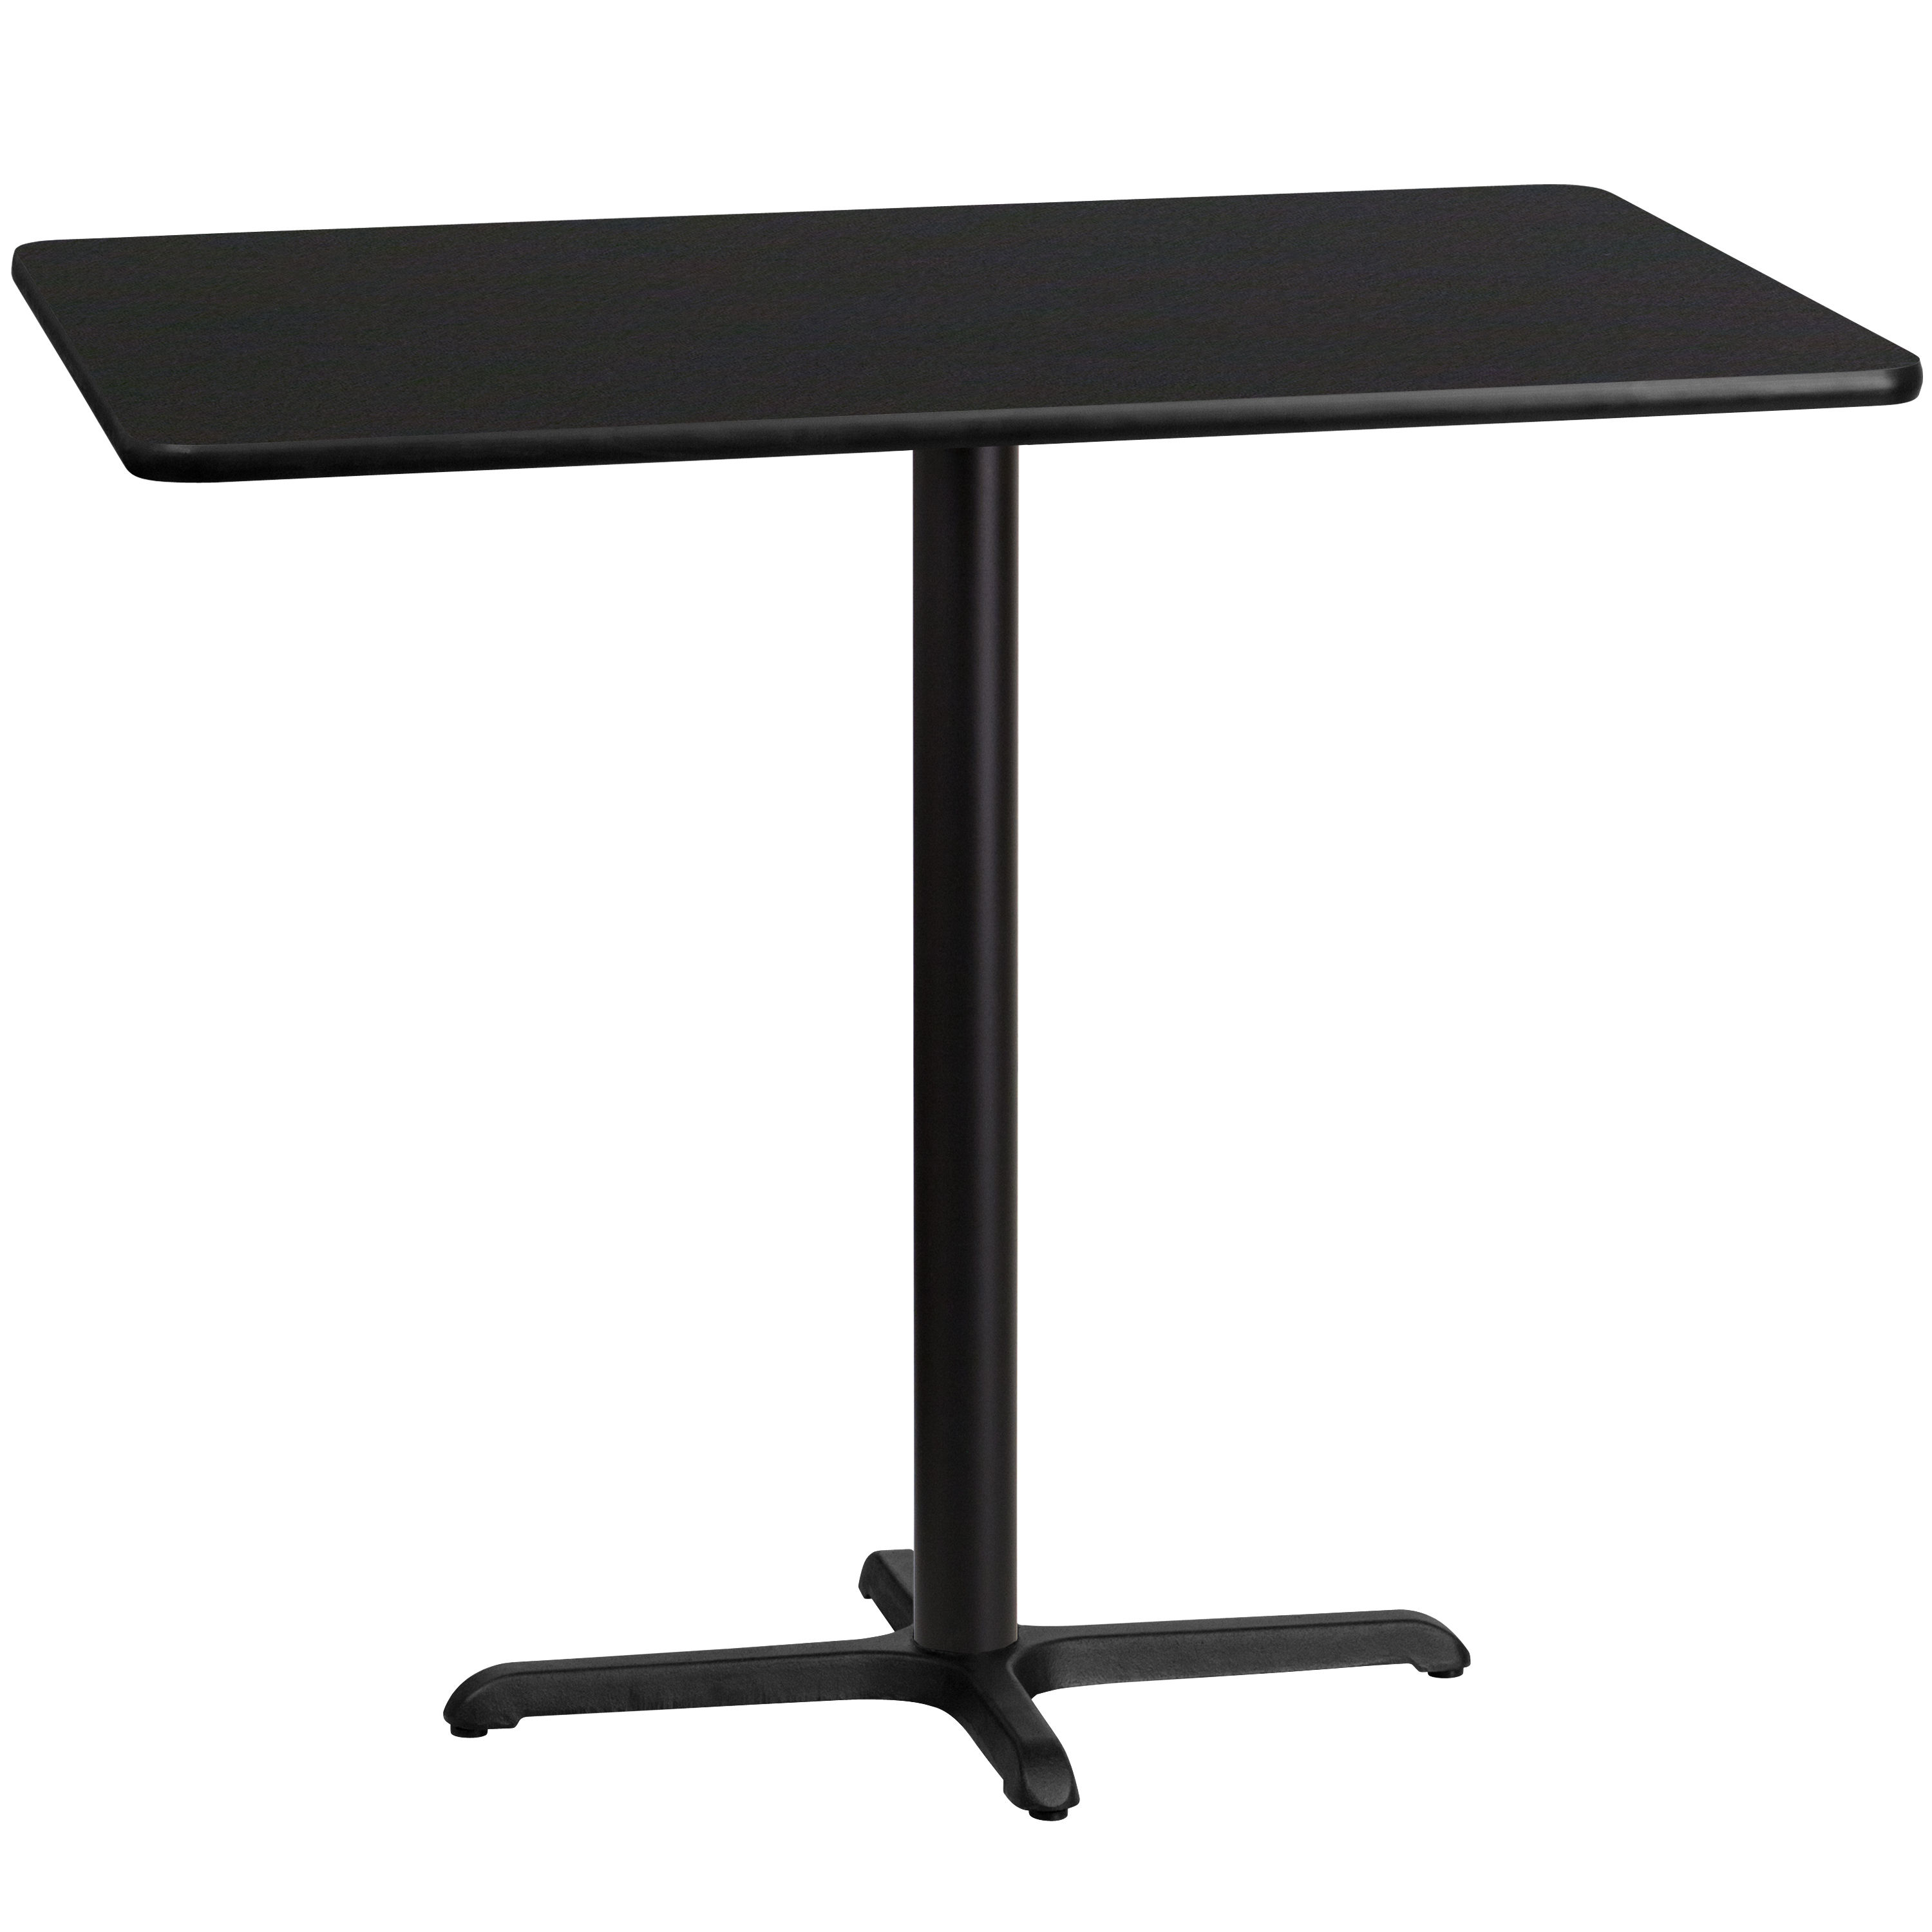 Bar Height Table To Enlarge